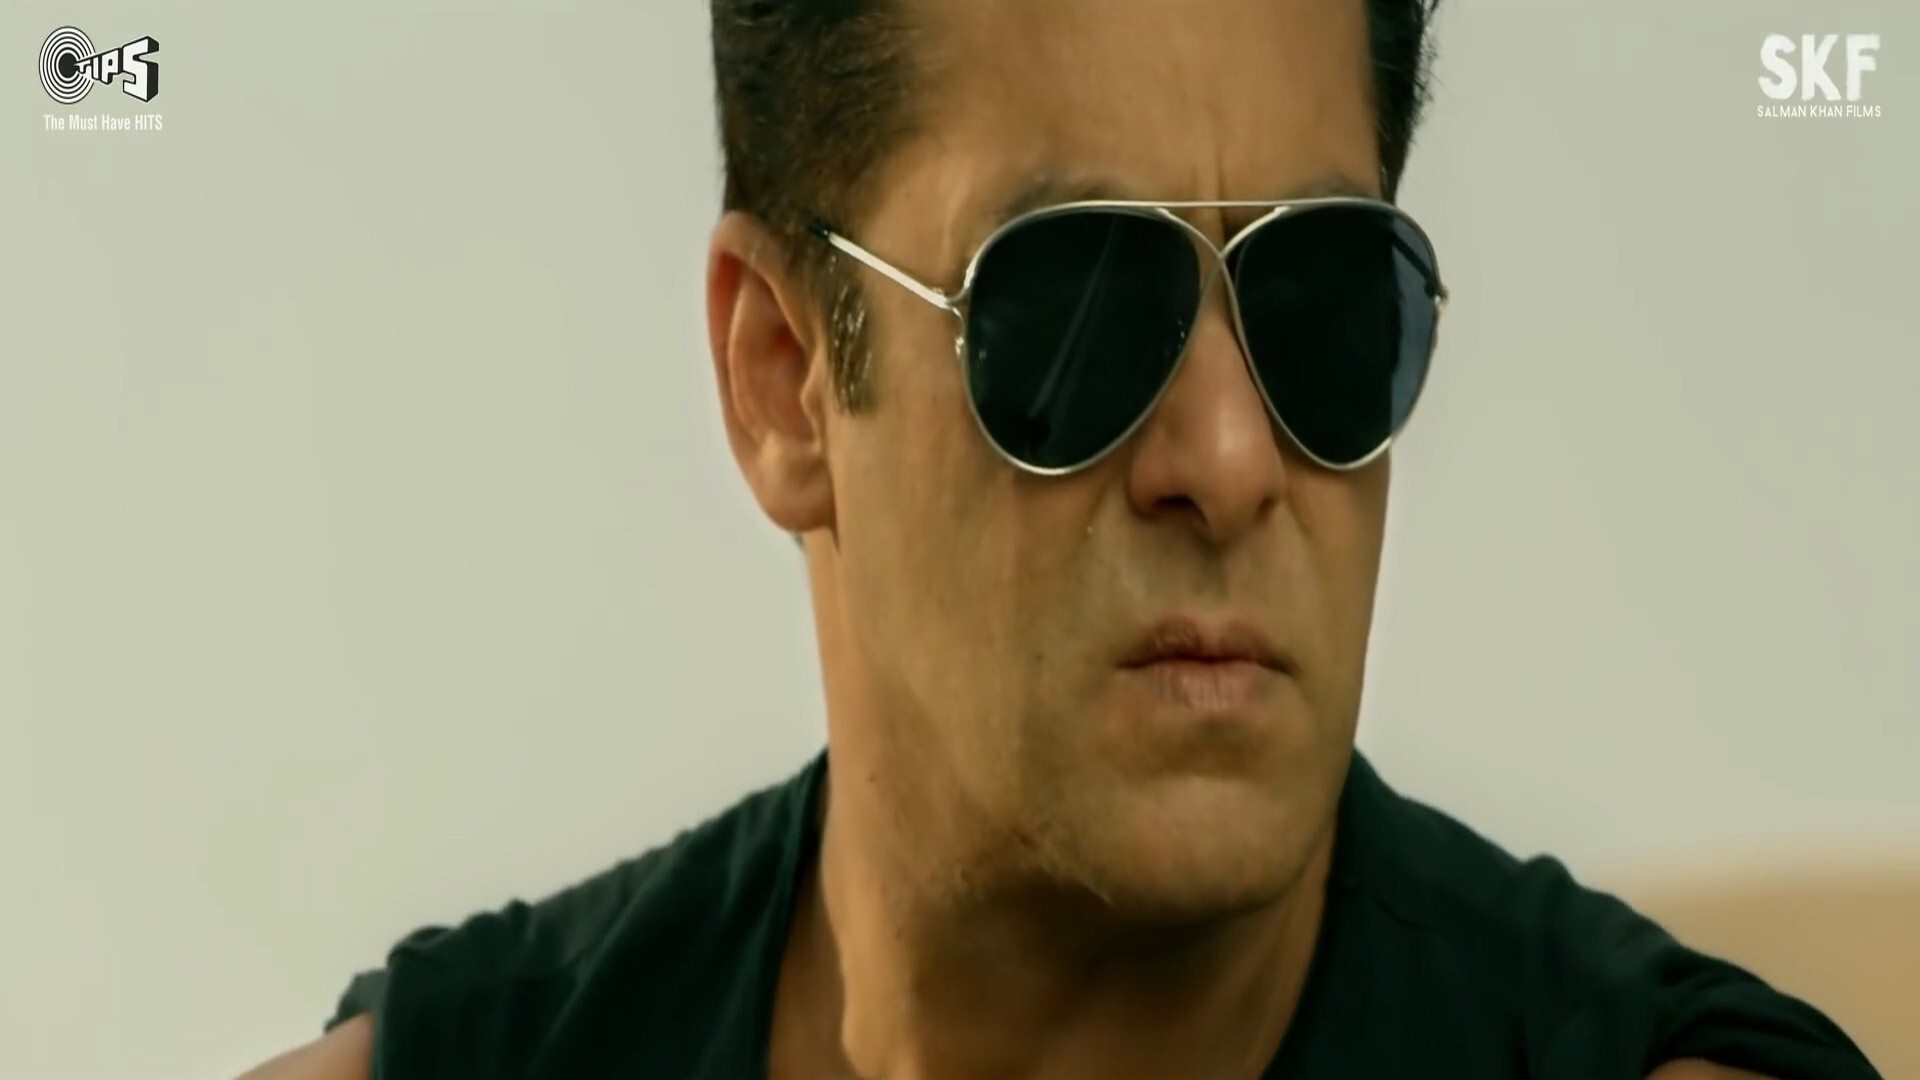 race 3 picture full hd